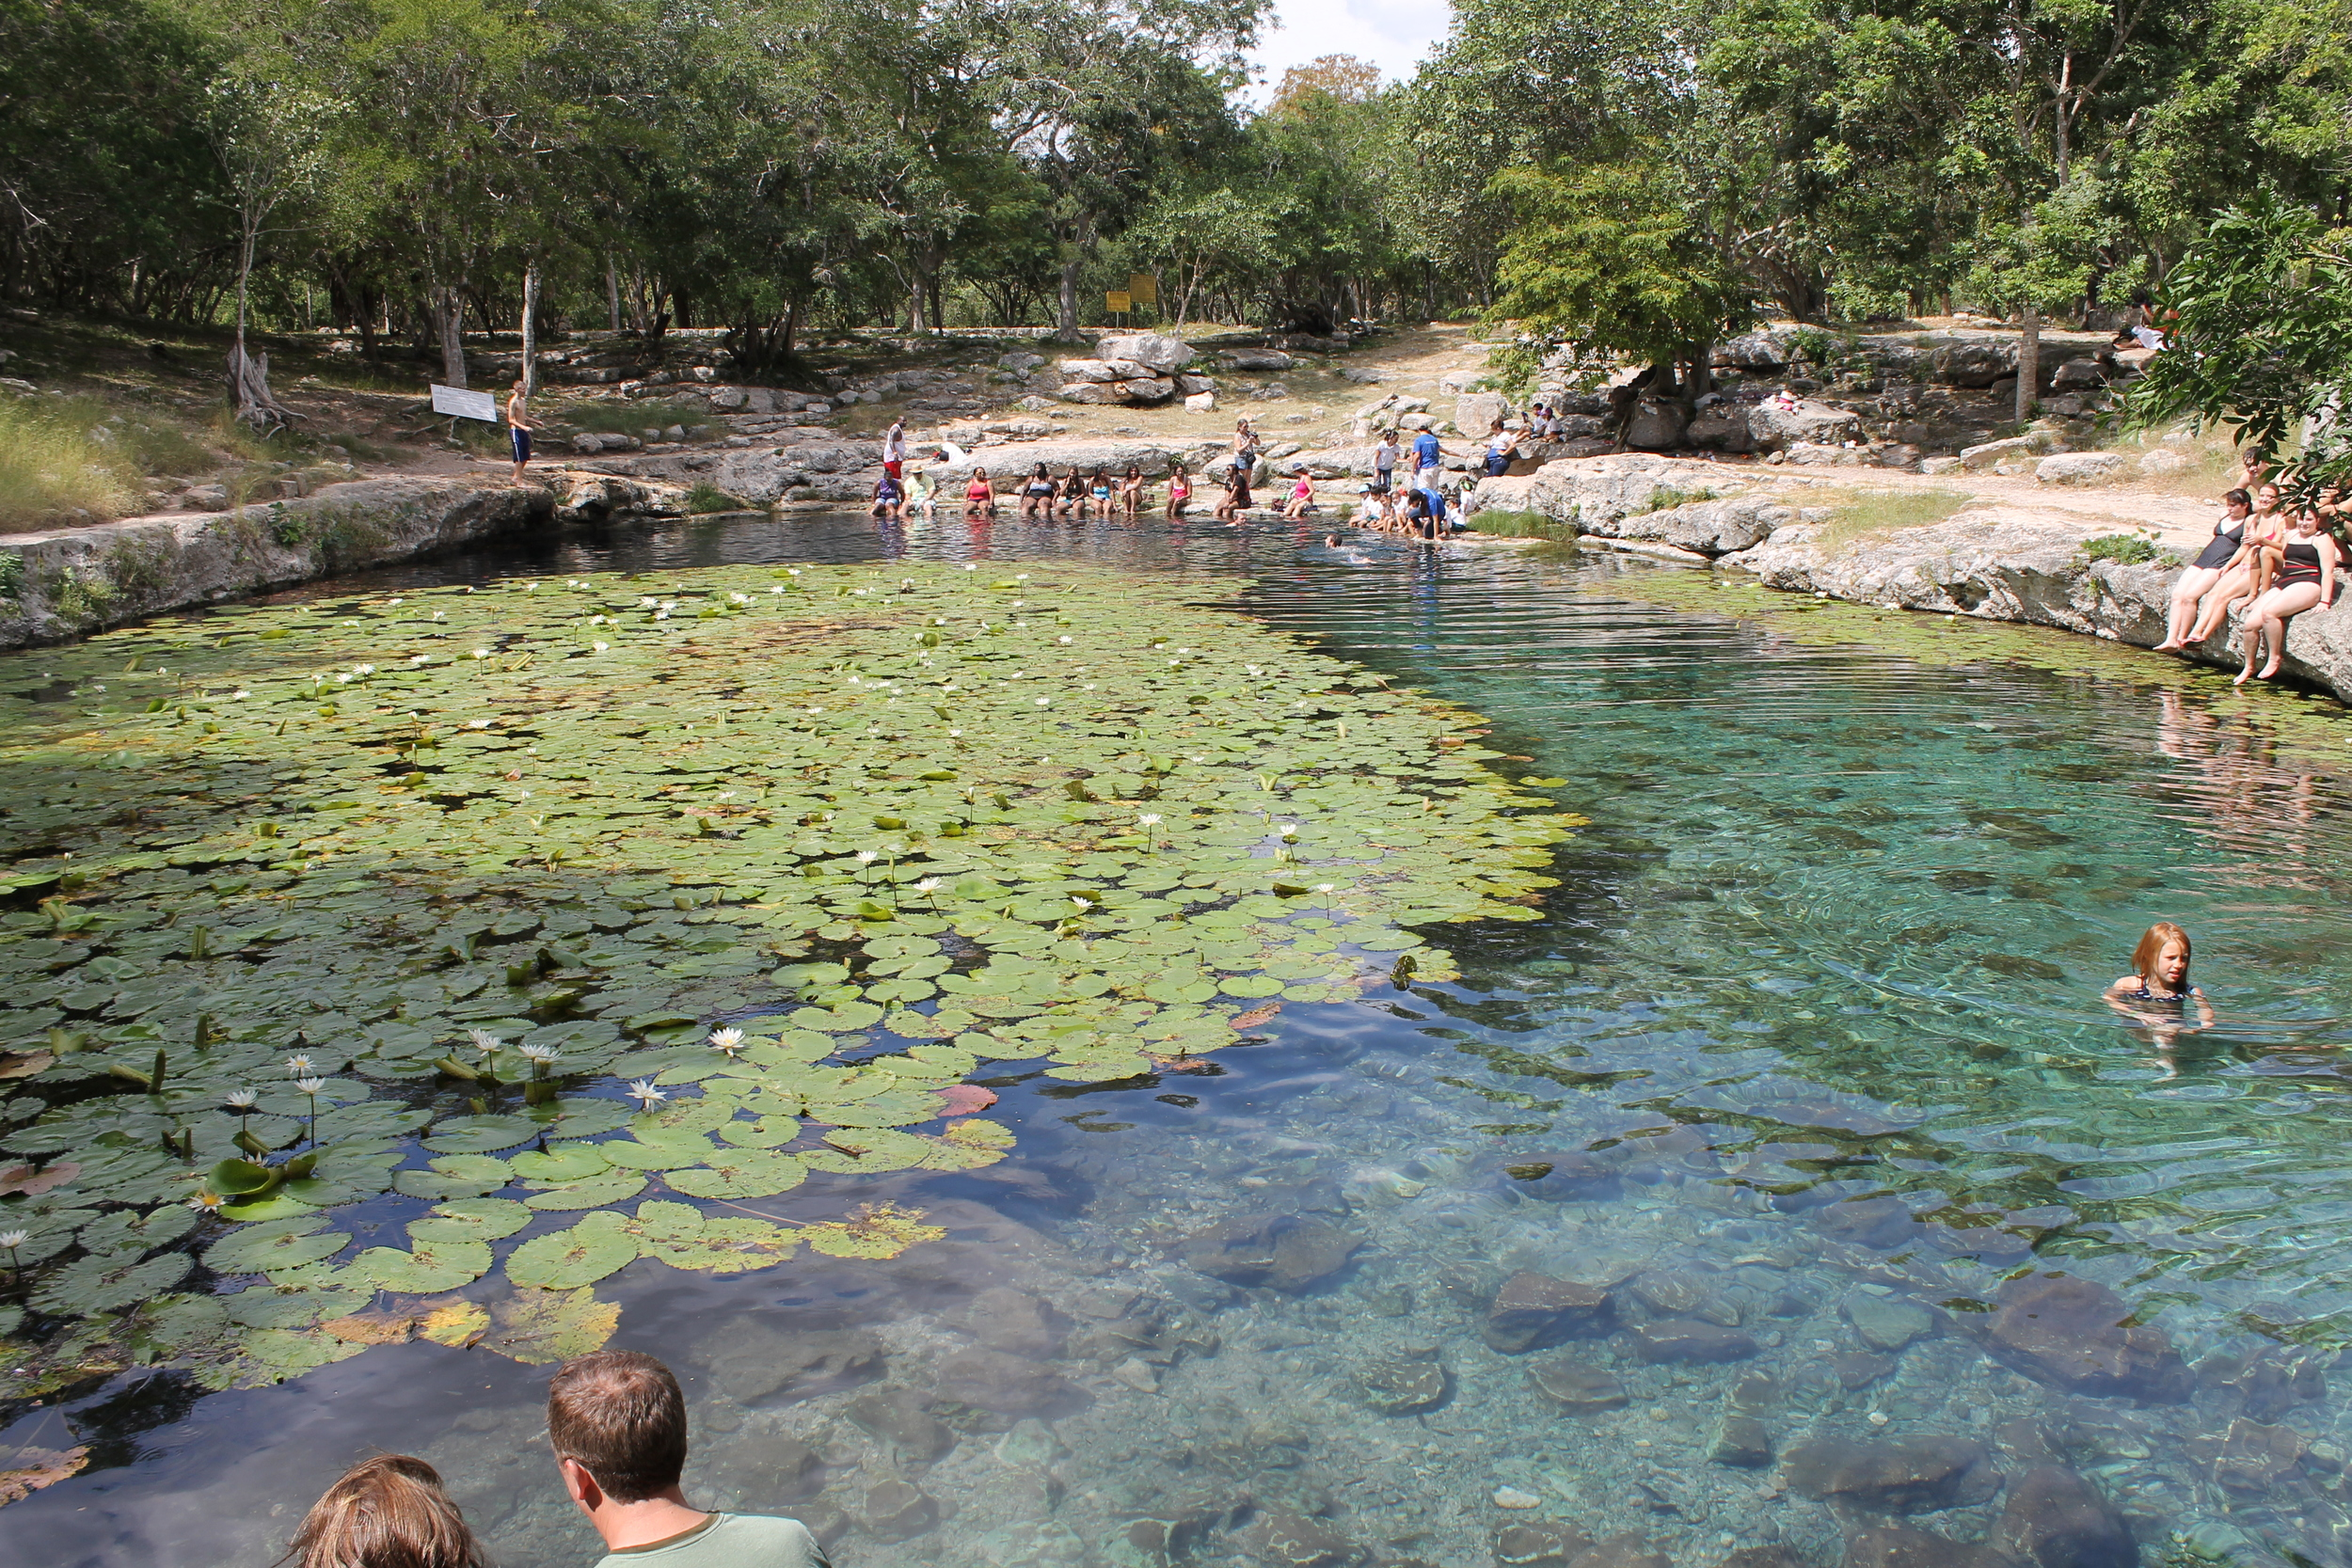 The cenote is a busy place on cruise ship days and so the water gets a little stirred up. The fish are happy though: lots of exfoliation potential.